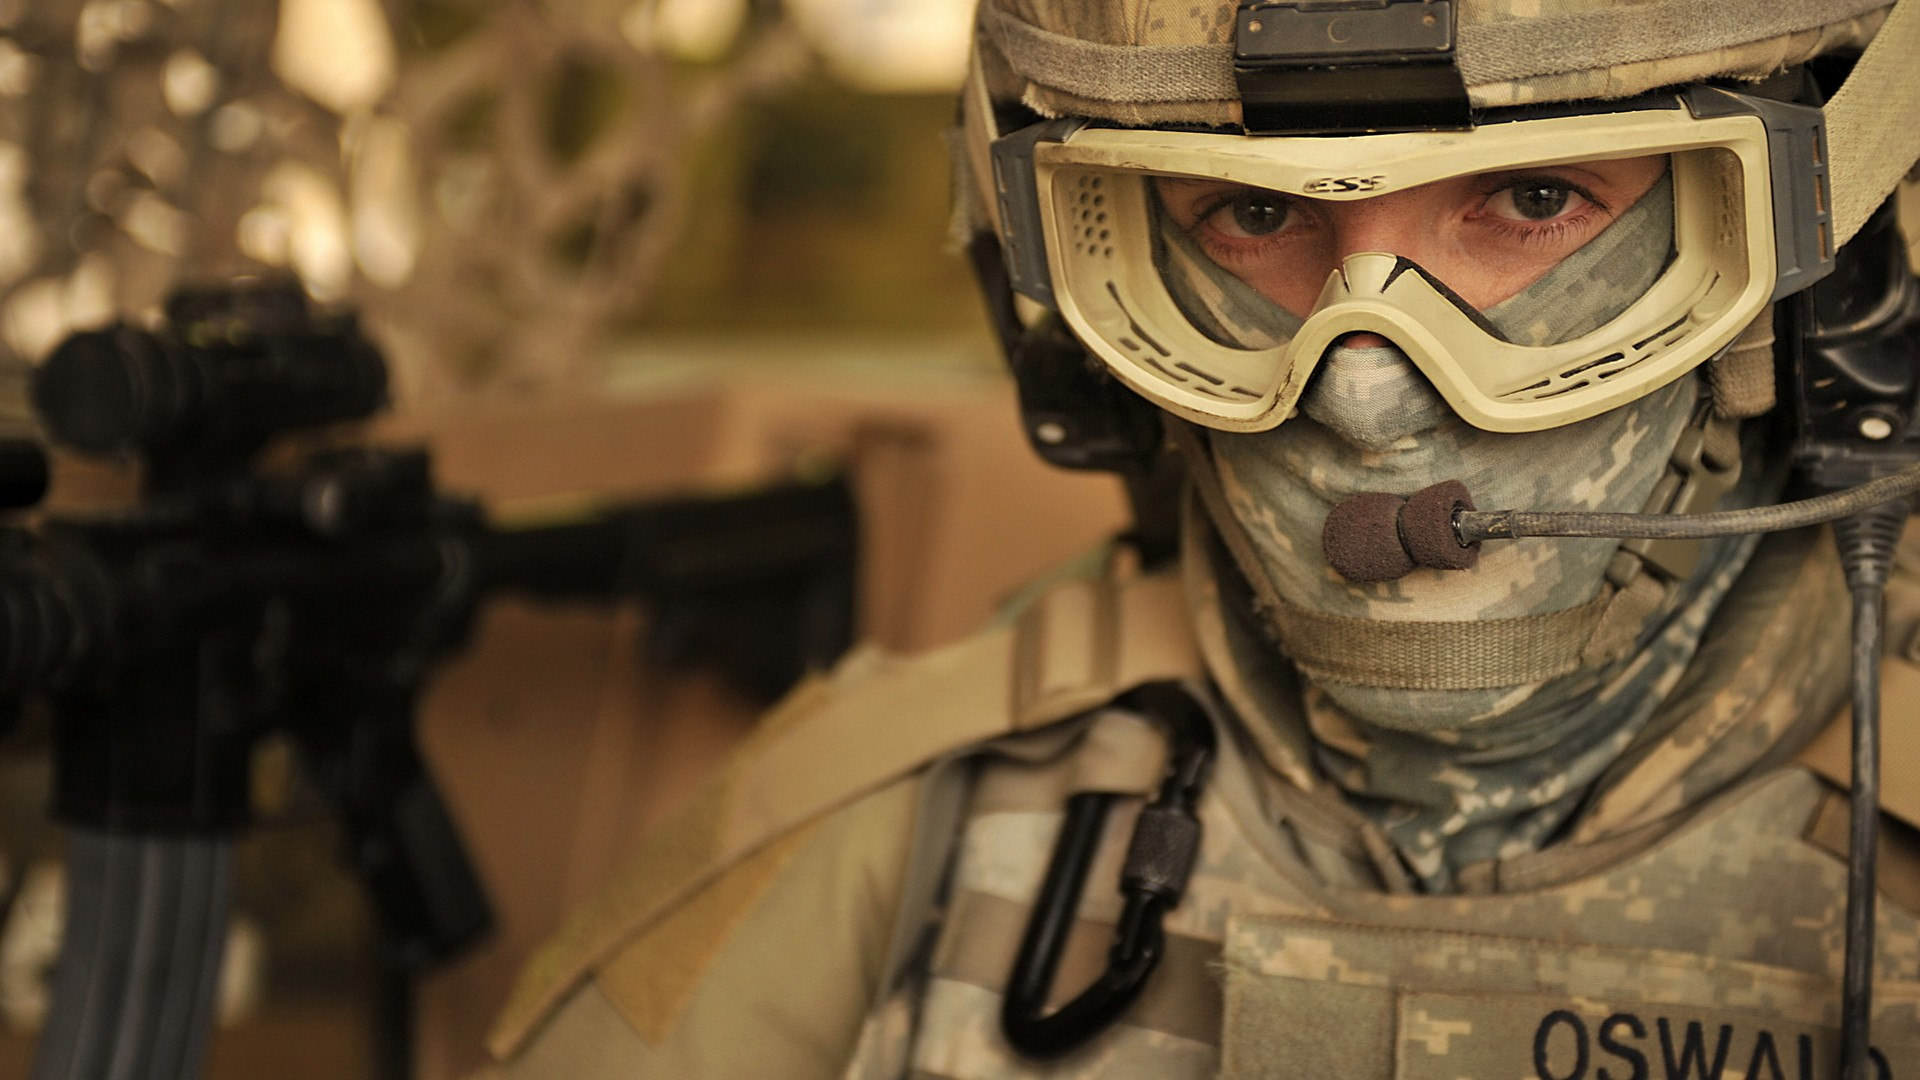 Soldiers Army Military Us Marines Corps Us Army Hd Wallpaper jpg 1920x1080